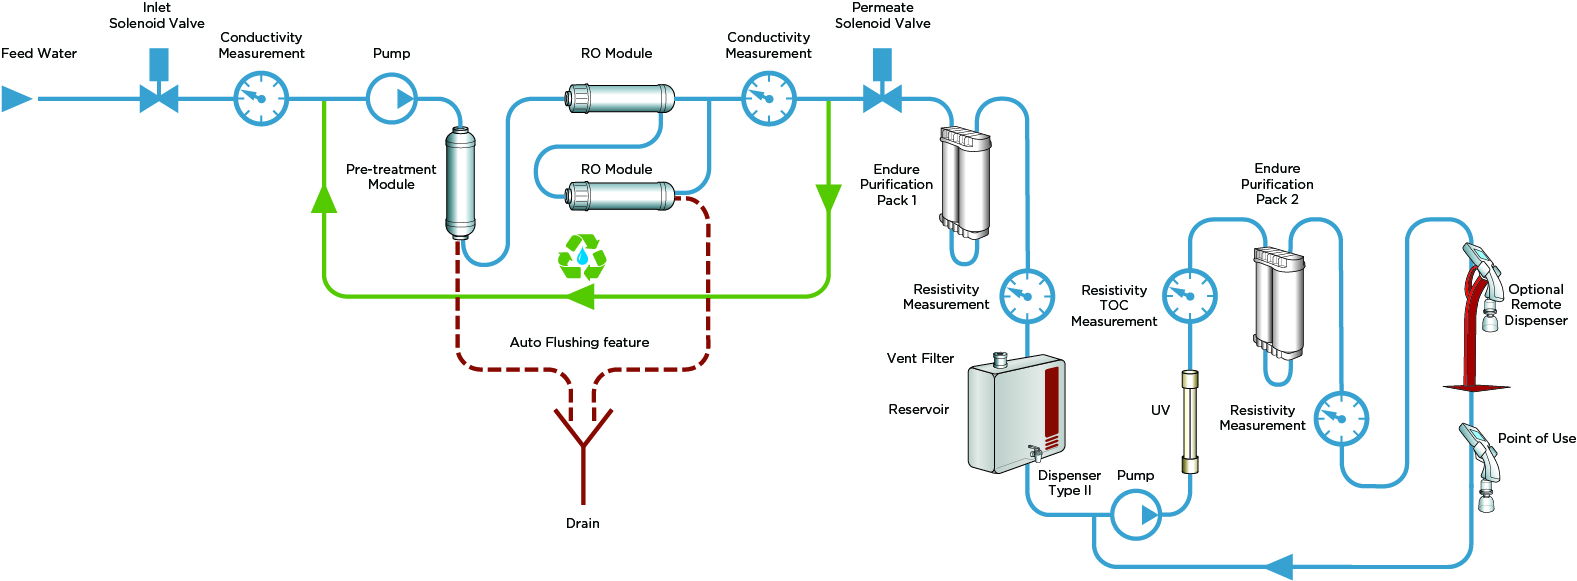 Avidity Science DUO Water System Flowchart